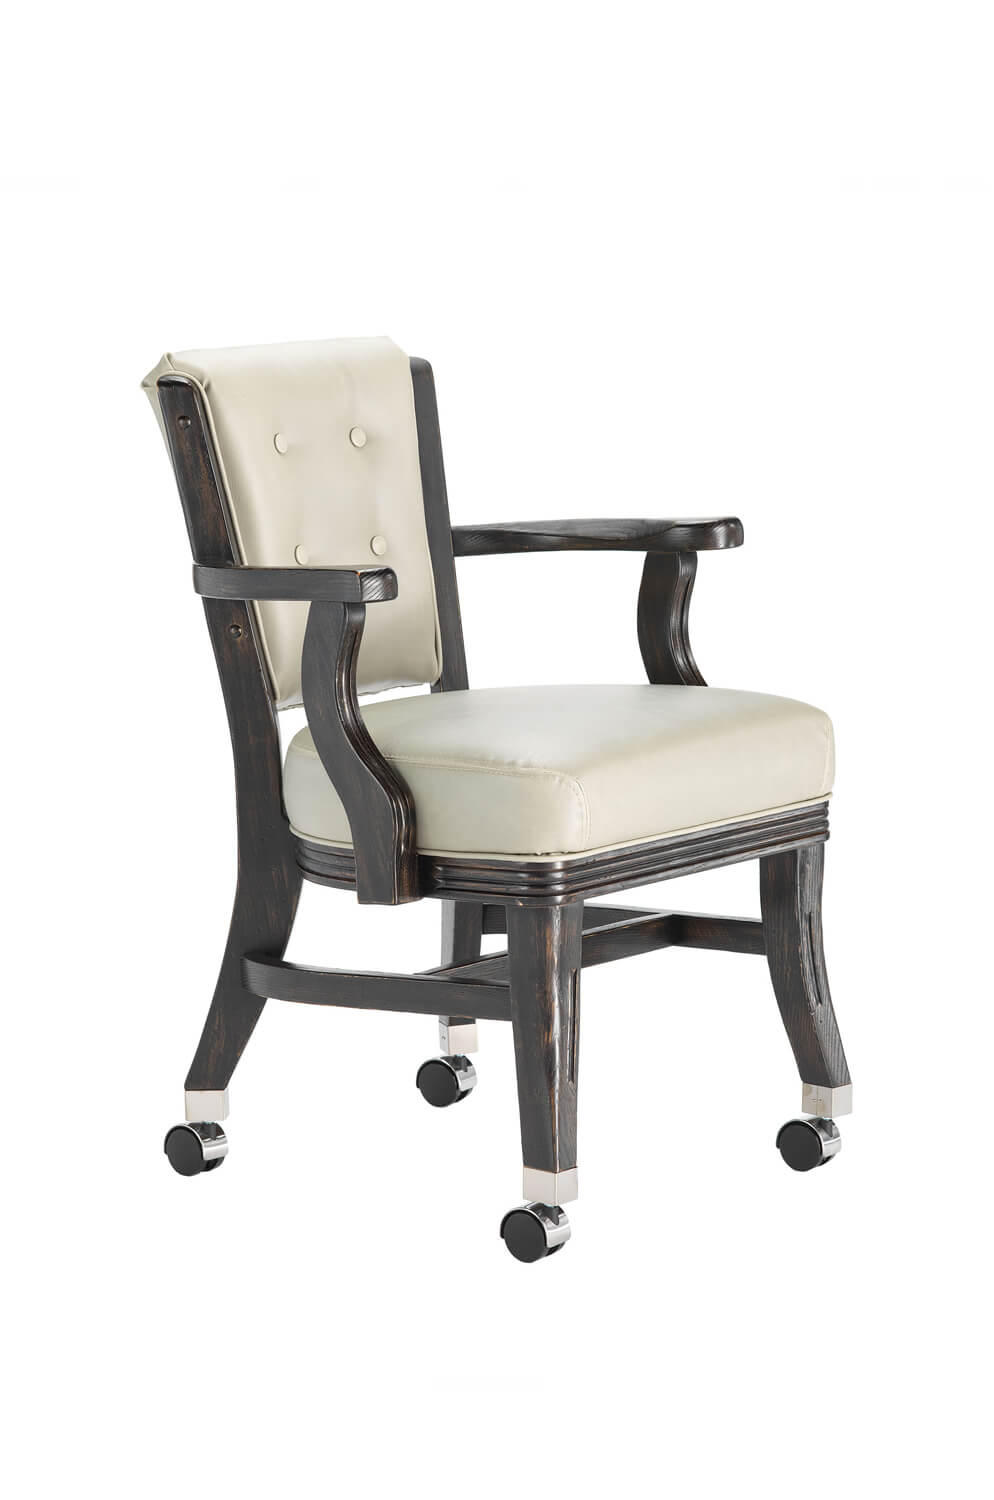 660 Oak Club Chair with Casters